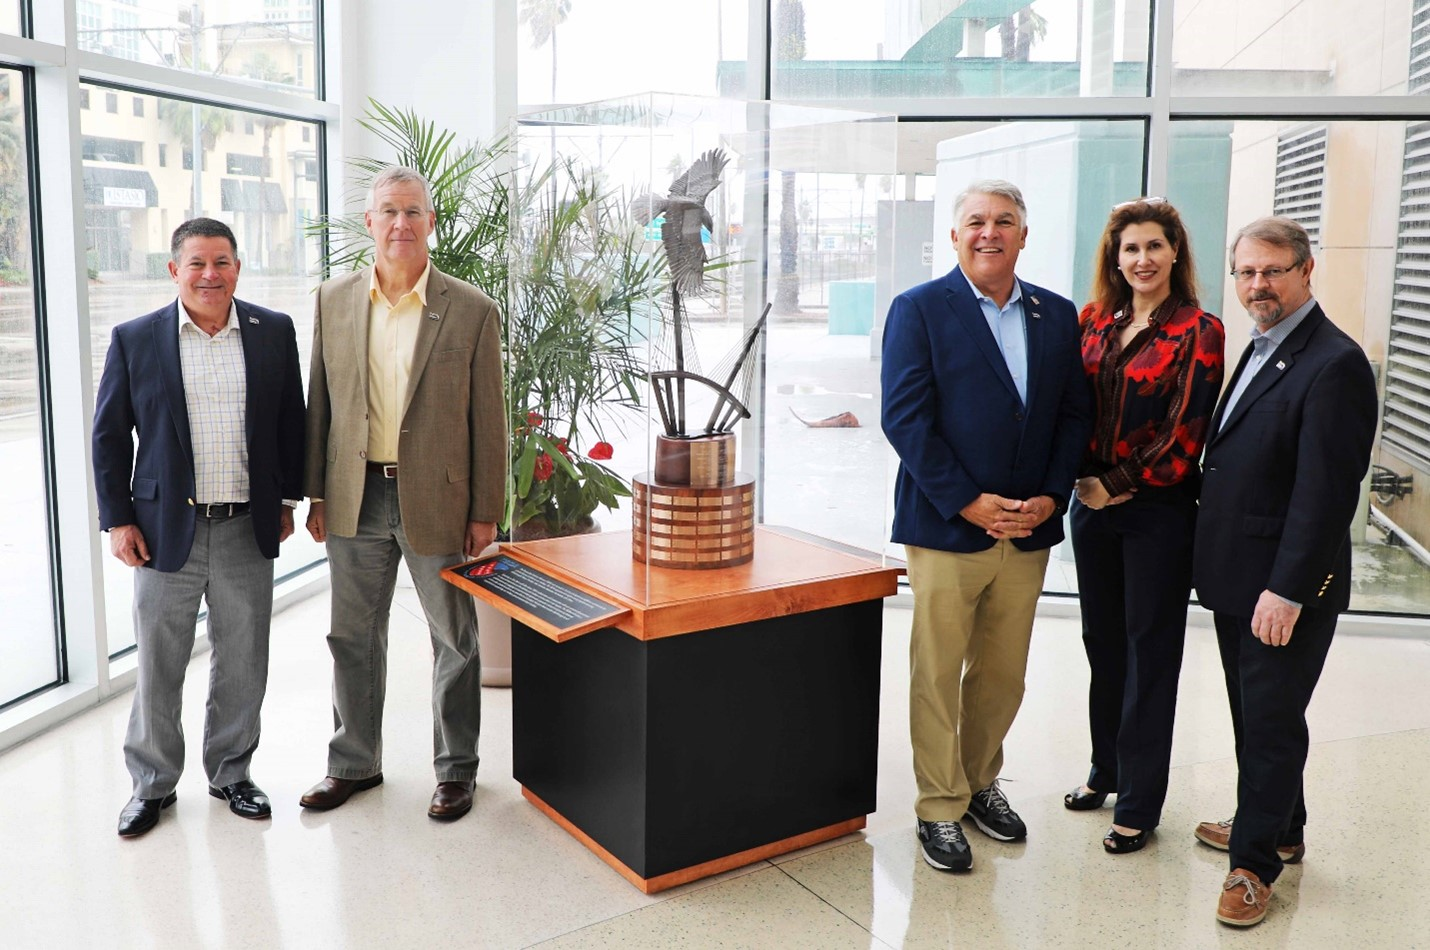 From left to right: Col. Donald J. Barnes (USAFR), Mag. Gen. Lawrence M. Martin, Jr. (USAFR), Paul Anderson, President/CEO Port Tampa Bay, Donna Segal Huneycutt, President and COO at WWC Global, Tim Jones, President TBDA